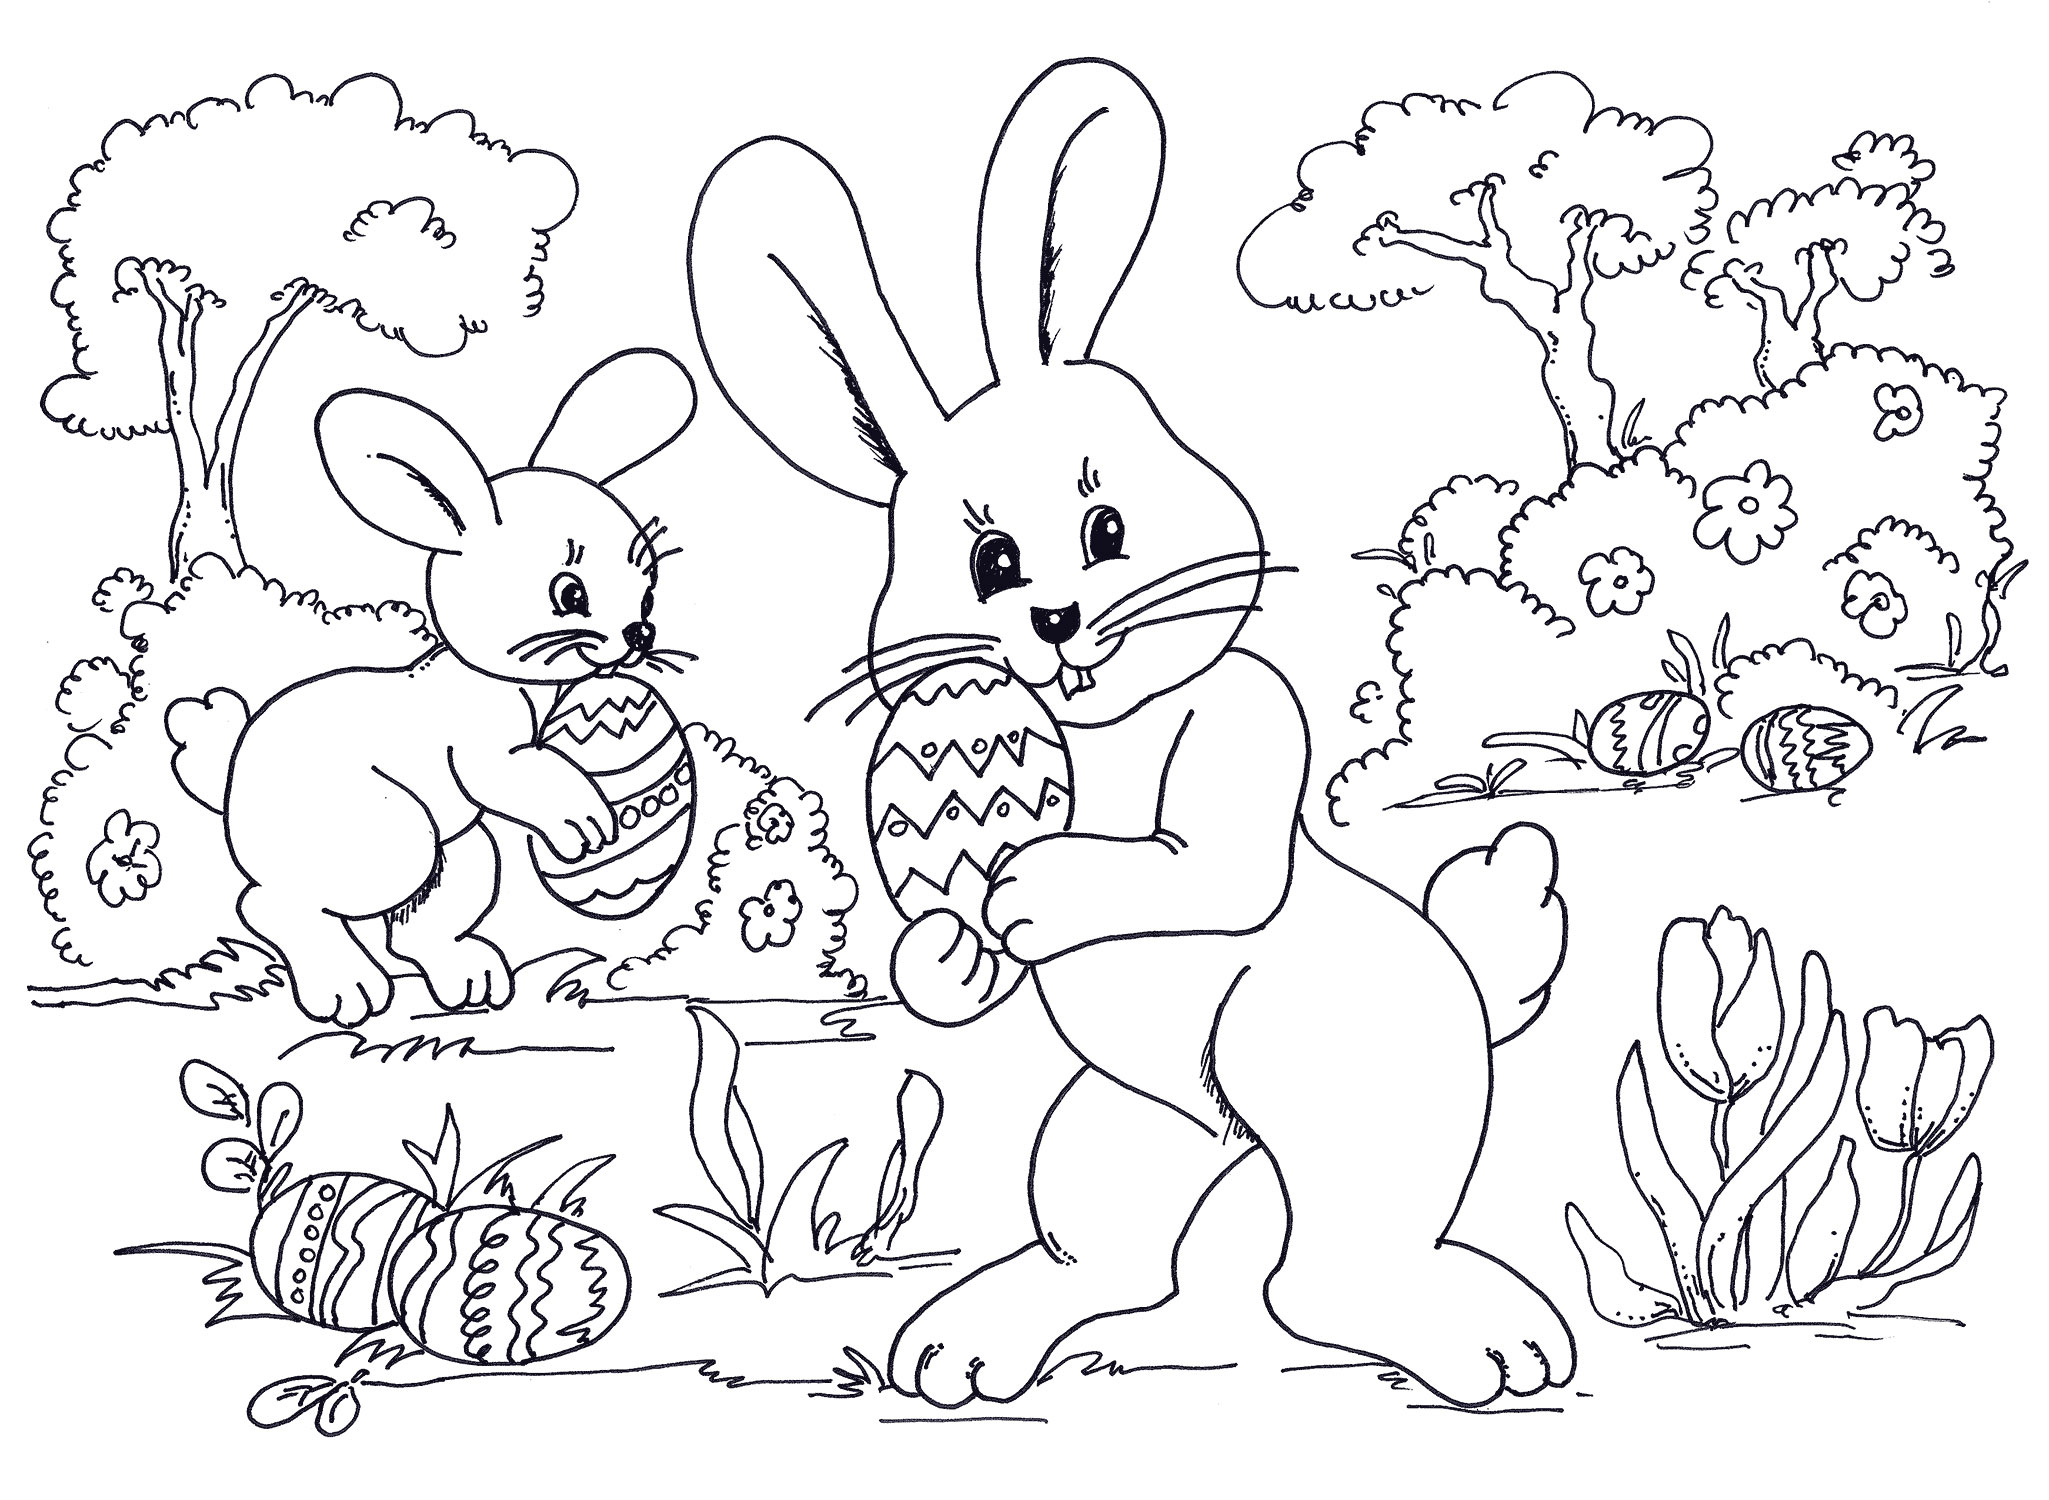 Free Easter Coloring Pages Easter Coloring Pages Best Coloring Pages to Print Of Easter Coloring Pages for Kids Crazy Little Projects Printable